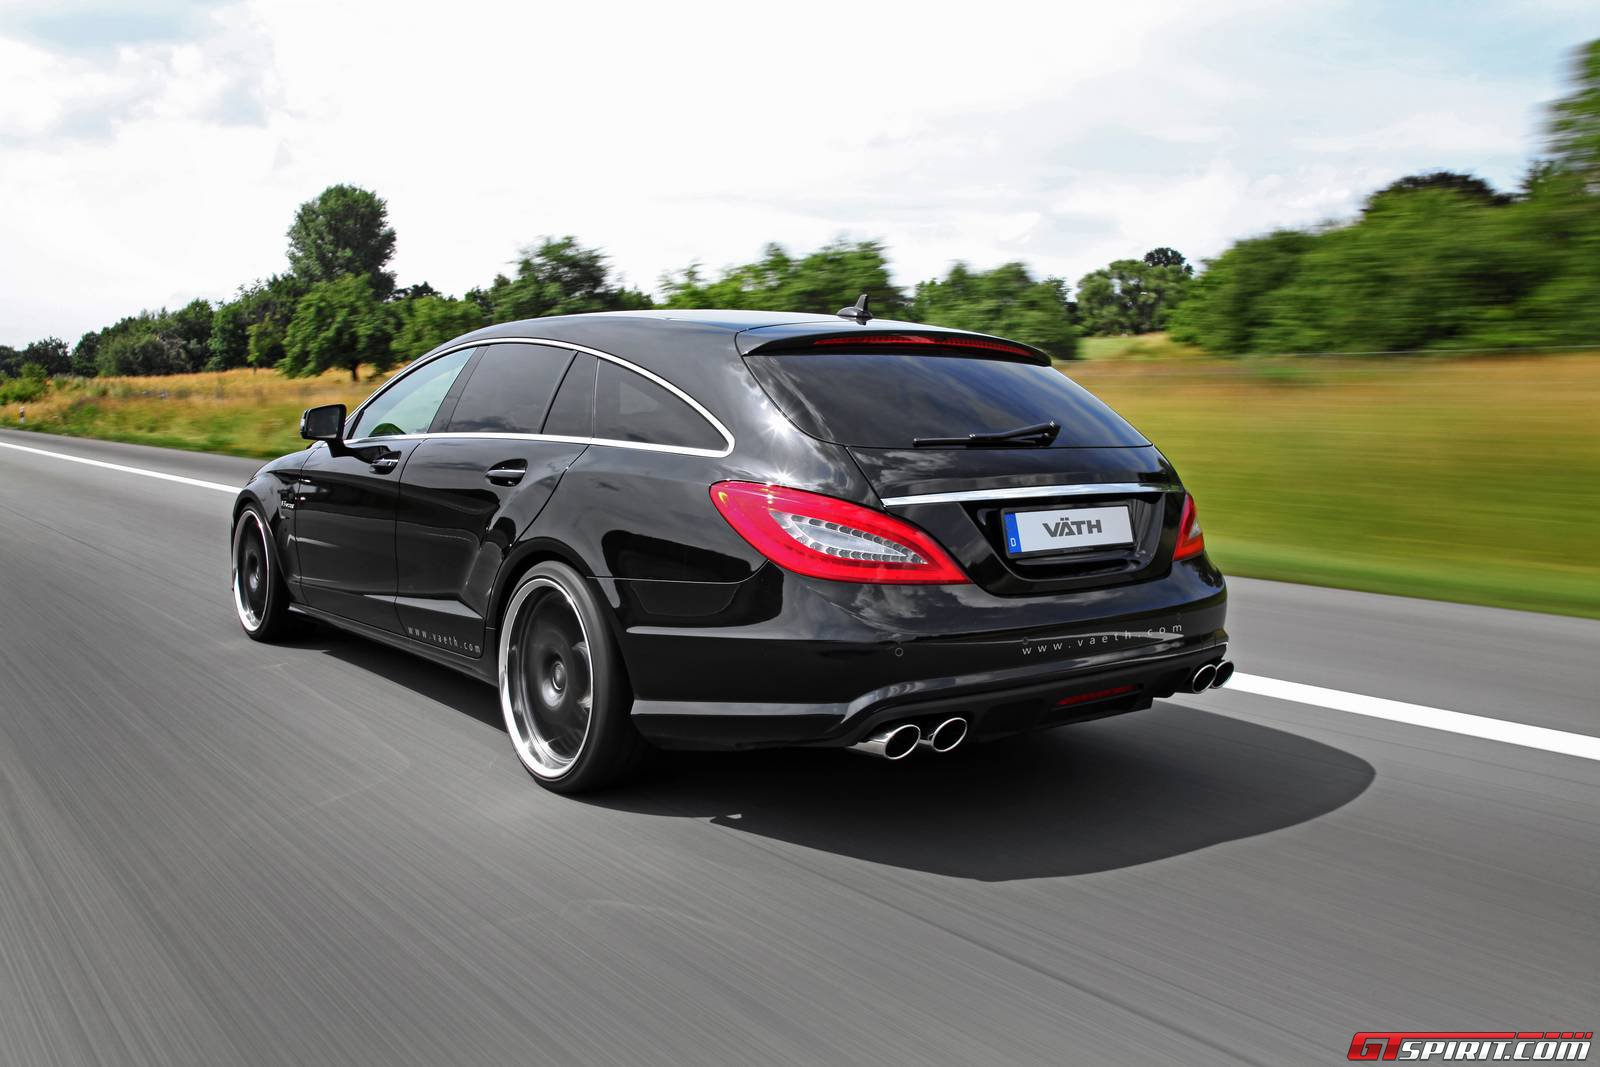 official 846hp mercedes benz cls 63 amg shooting brake by vath gtspirit. Black Bedroom Furniture Sets. Home Design Ideas